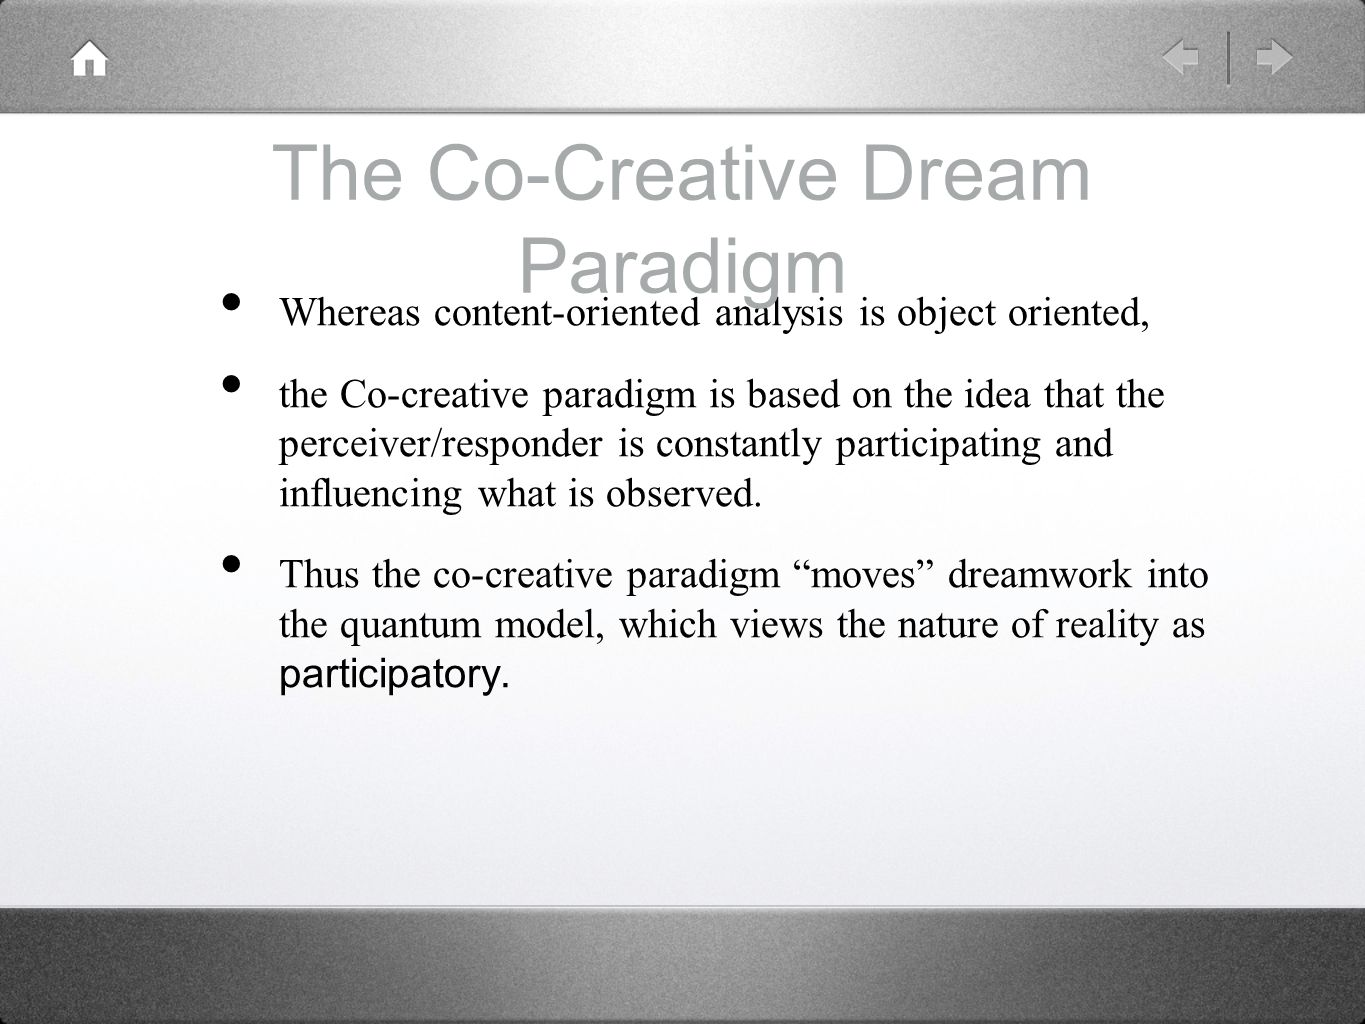 Whereas content-oriented analysis is object oriented, the Co-creative paradigm is based on the idea that the perceiver/responder is constantly partici